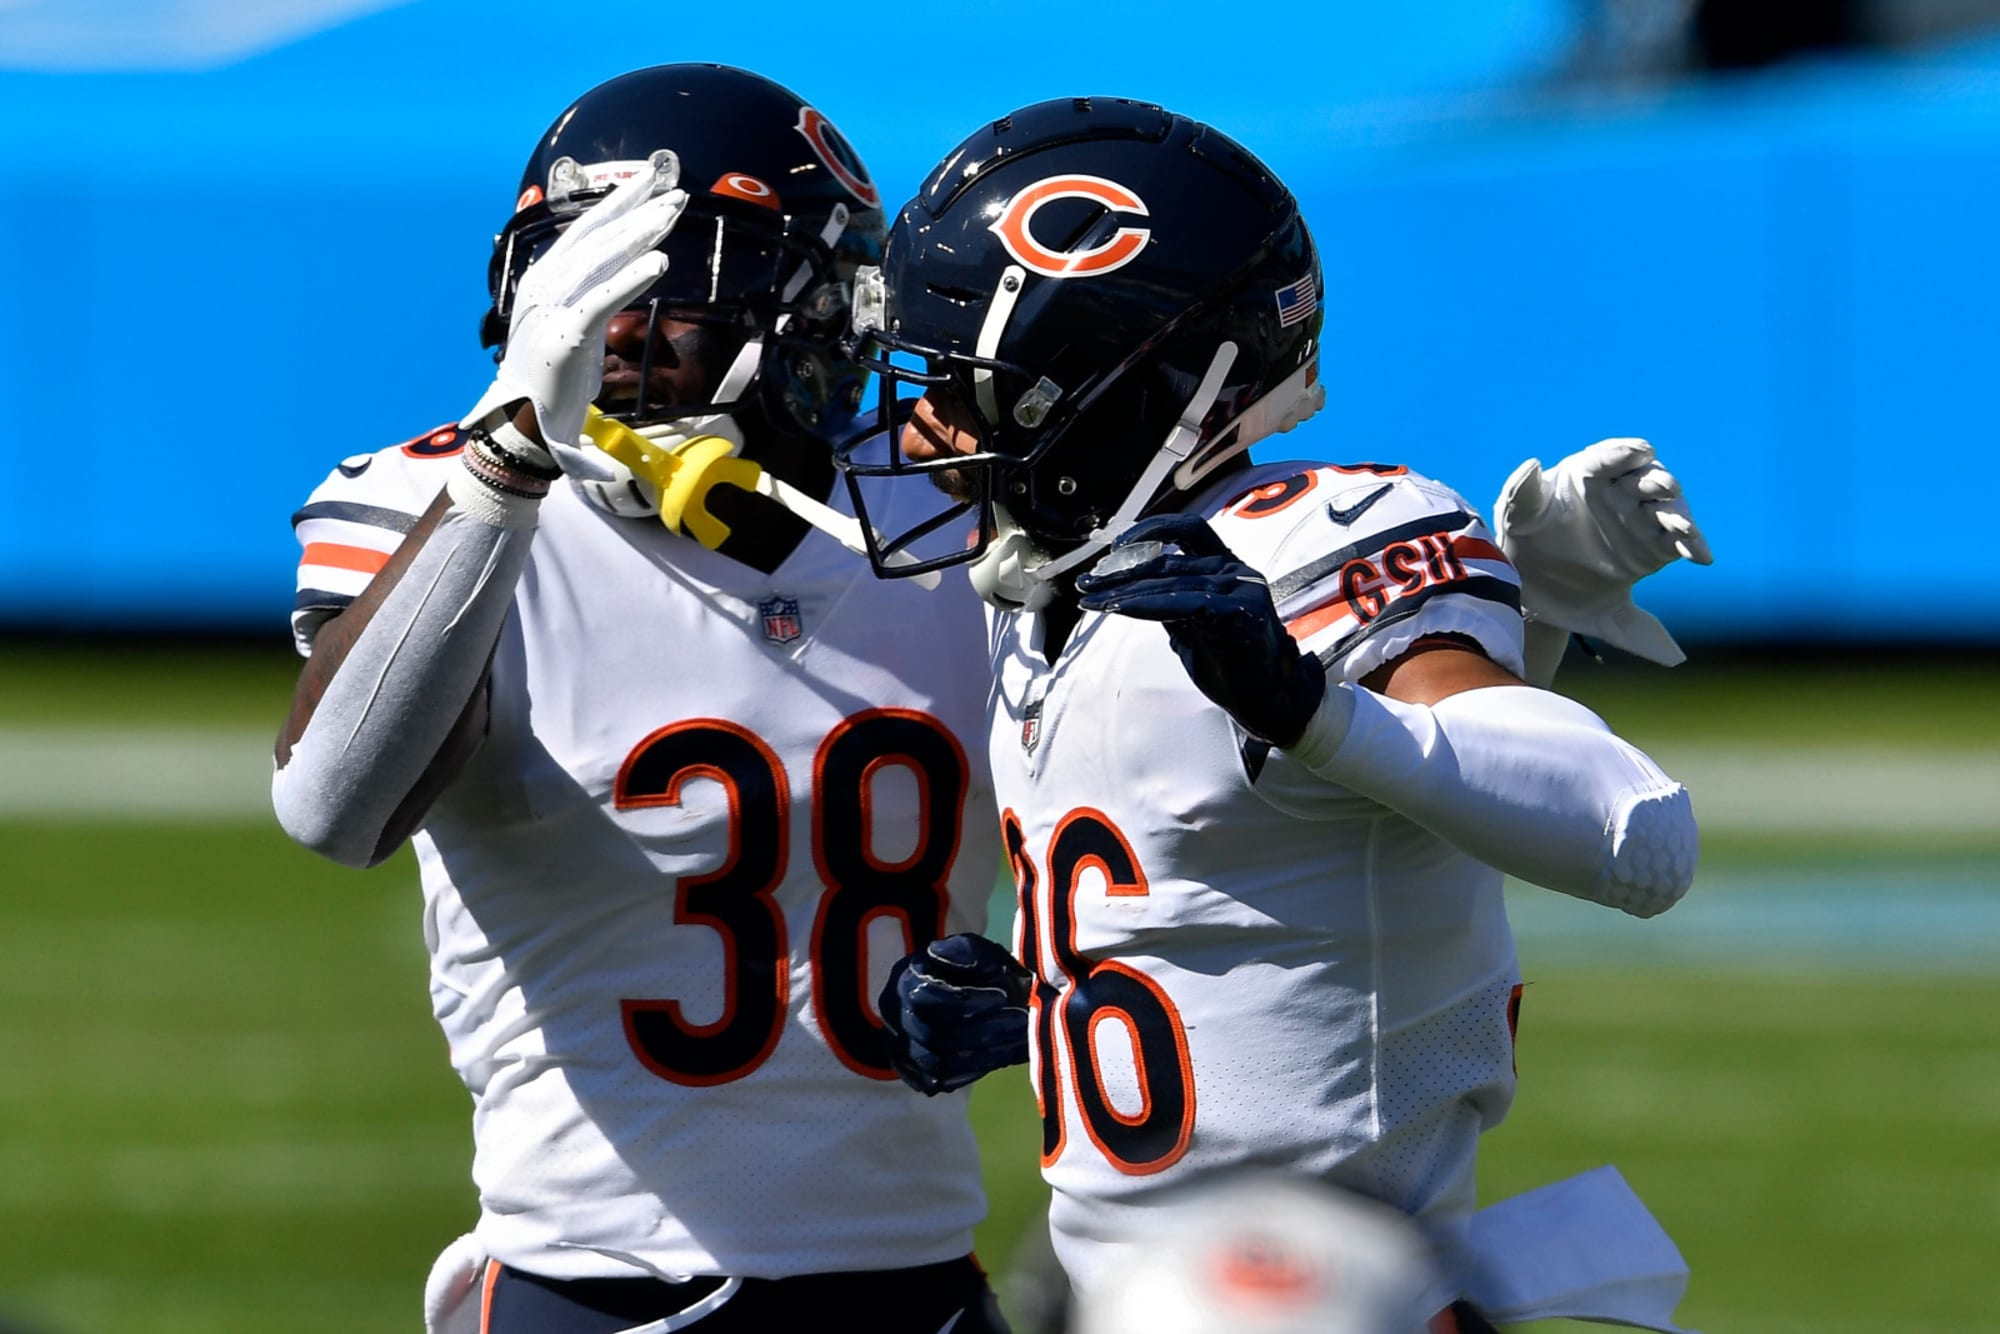 The Chicago Bears bring back continuity to the defensive backfield